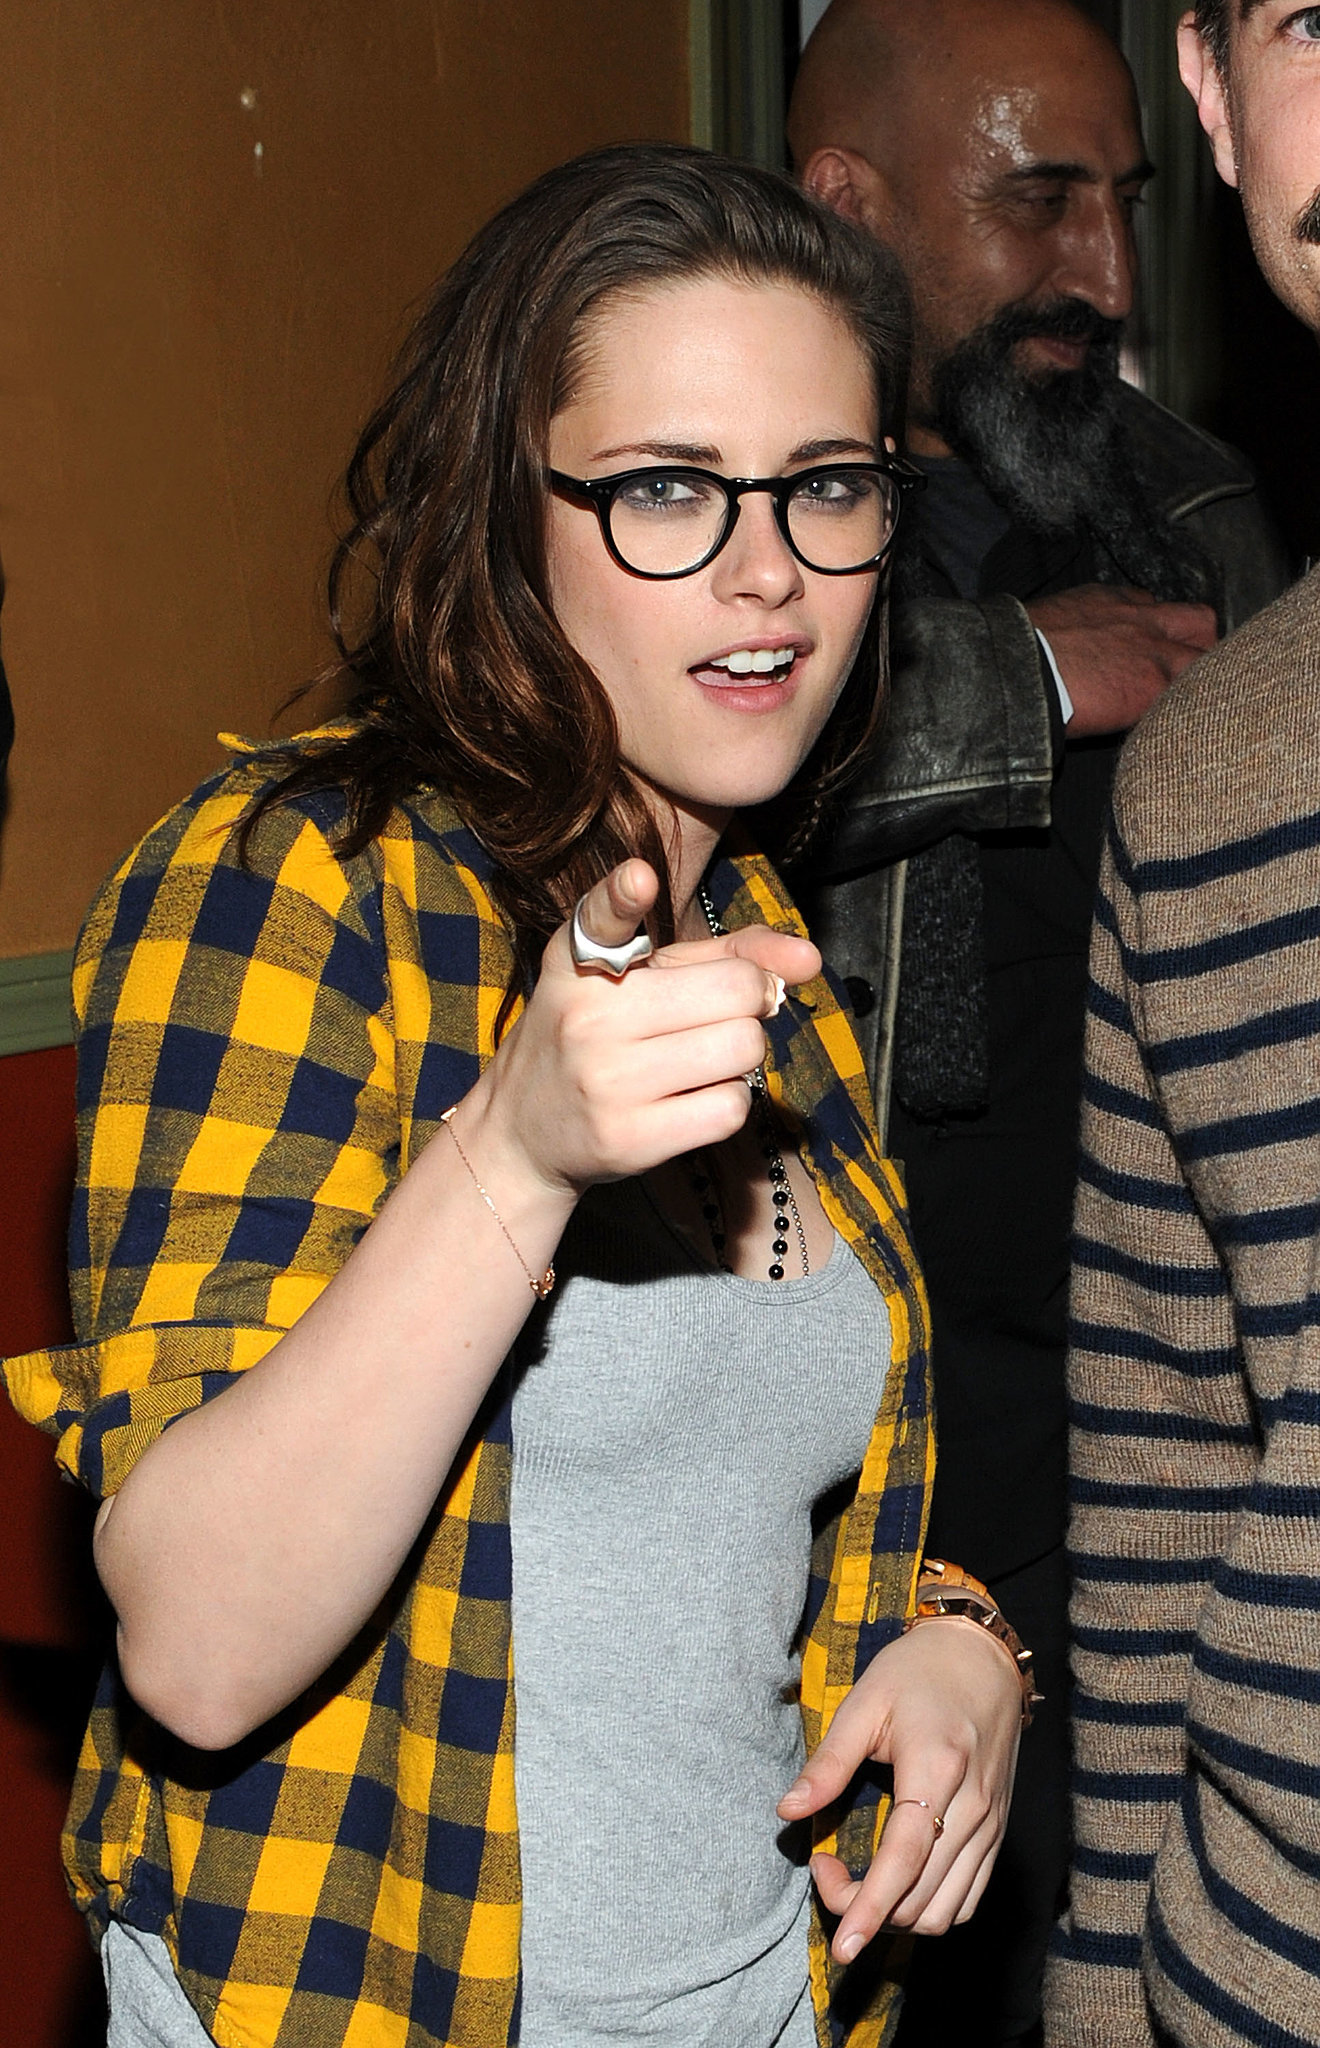 Download this Kristen Stewart Pointed The Camera Chefdance Friday picture